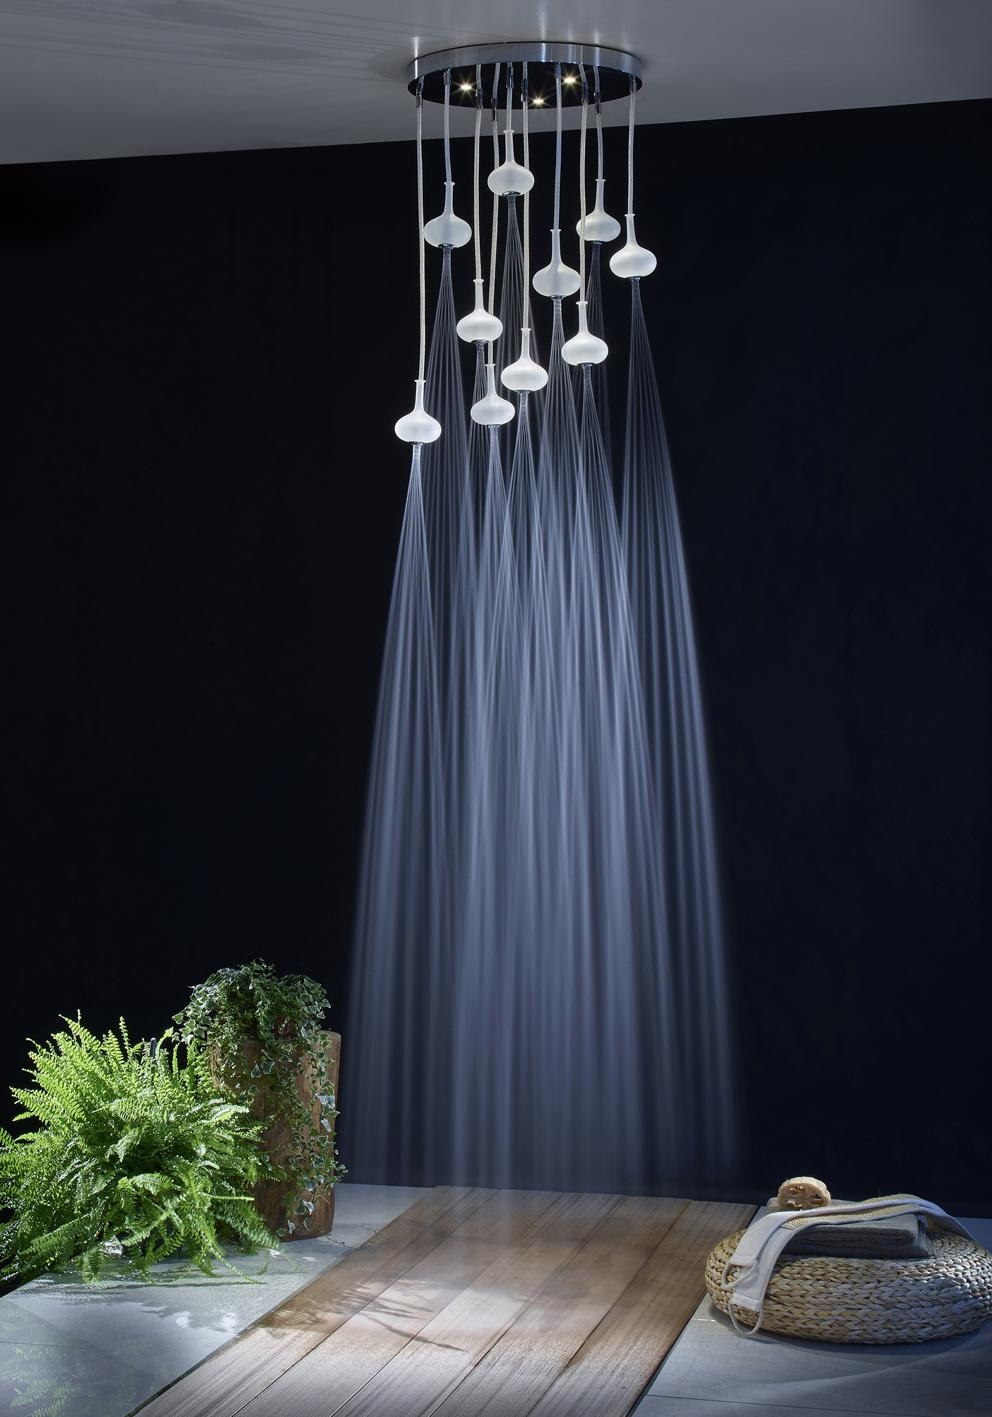 Davide Vercelli, Melograno shower head by Fima Carlo Frattini and Melogranoblu